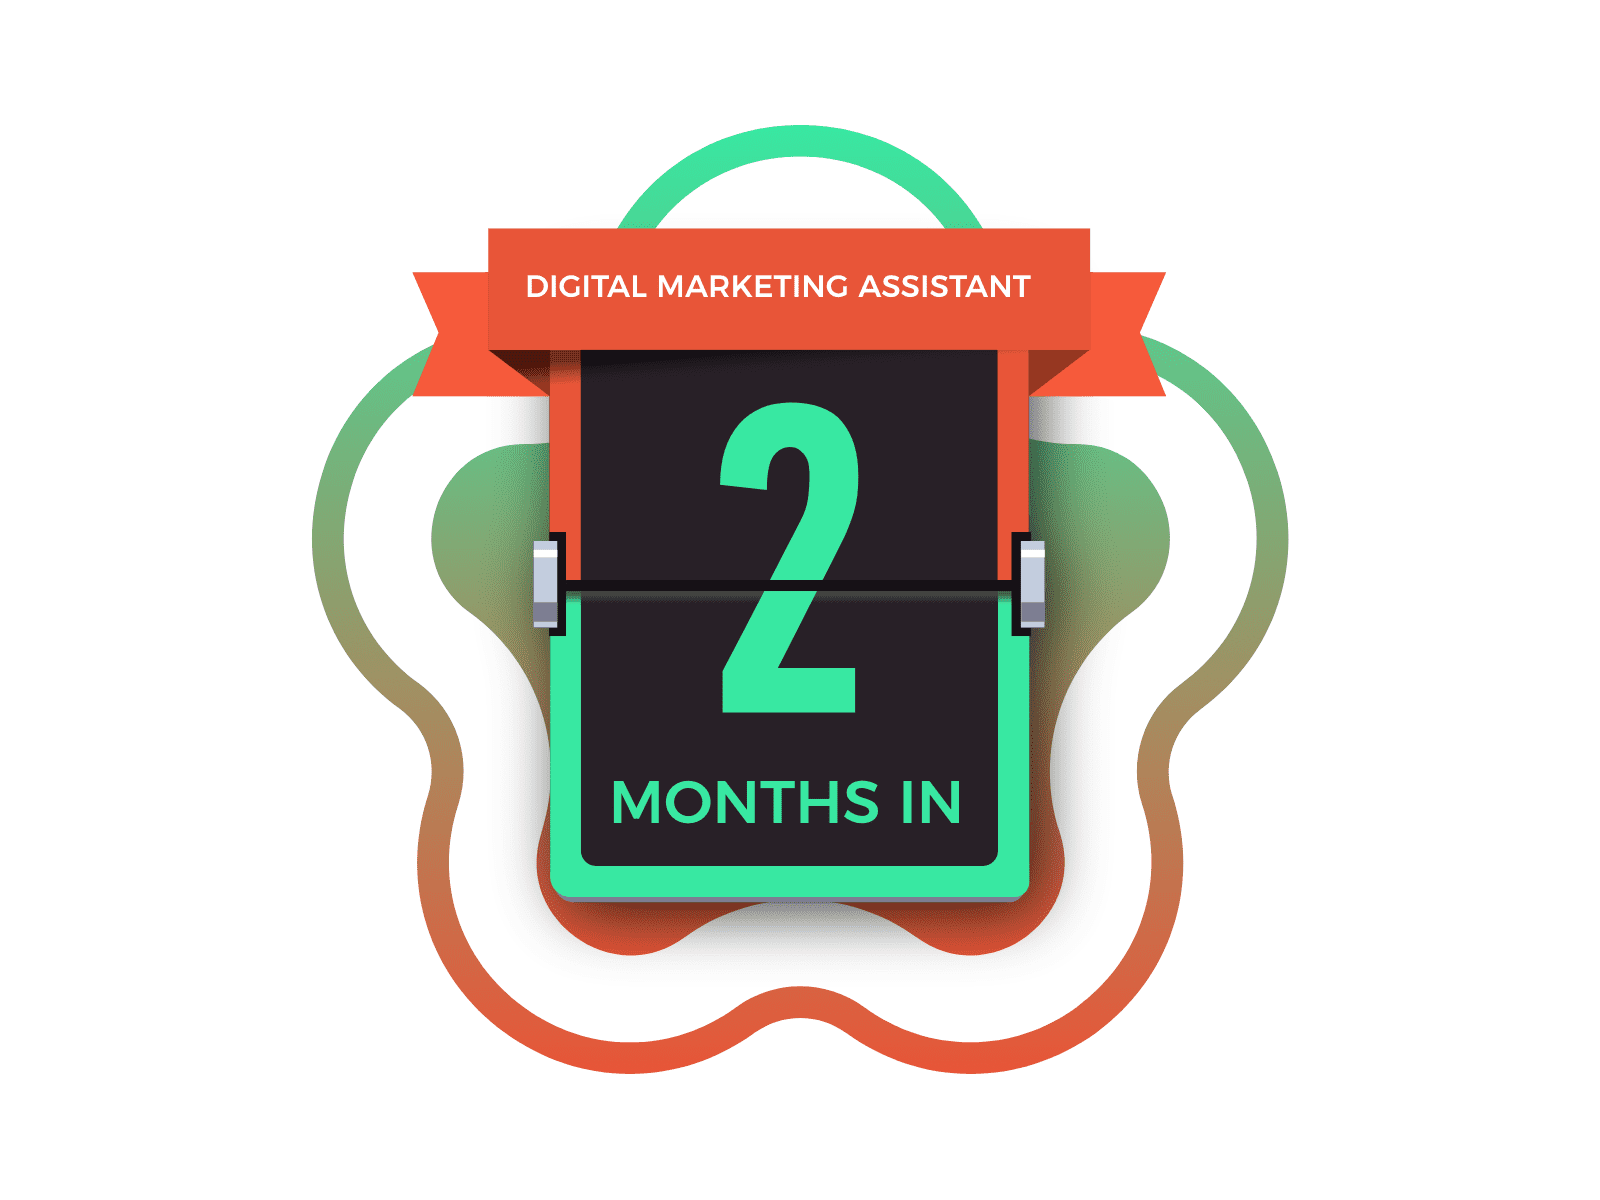 Digital Marketing Assistant | 2 Months In